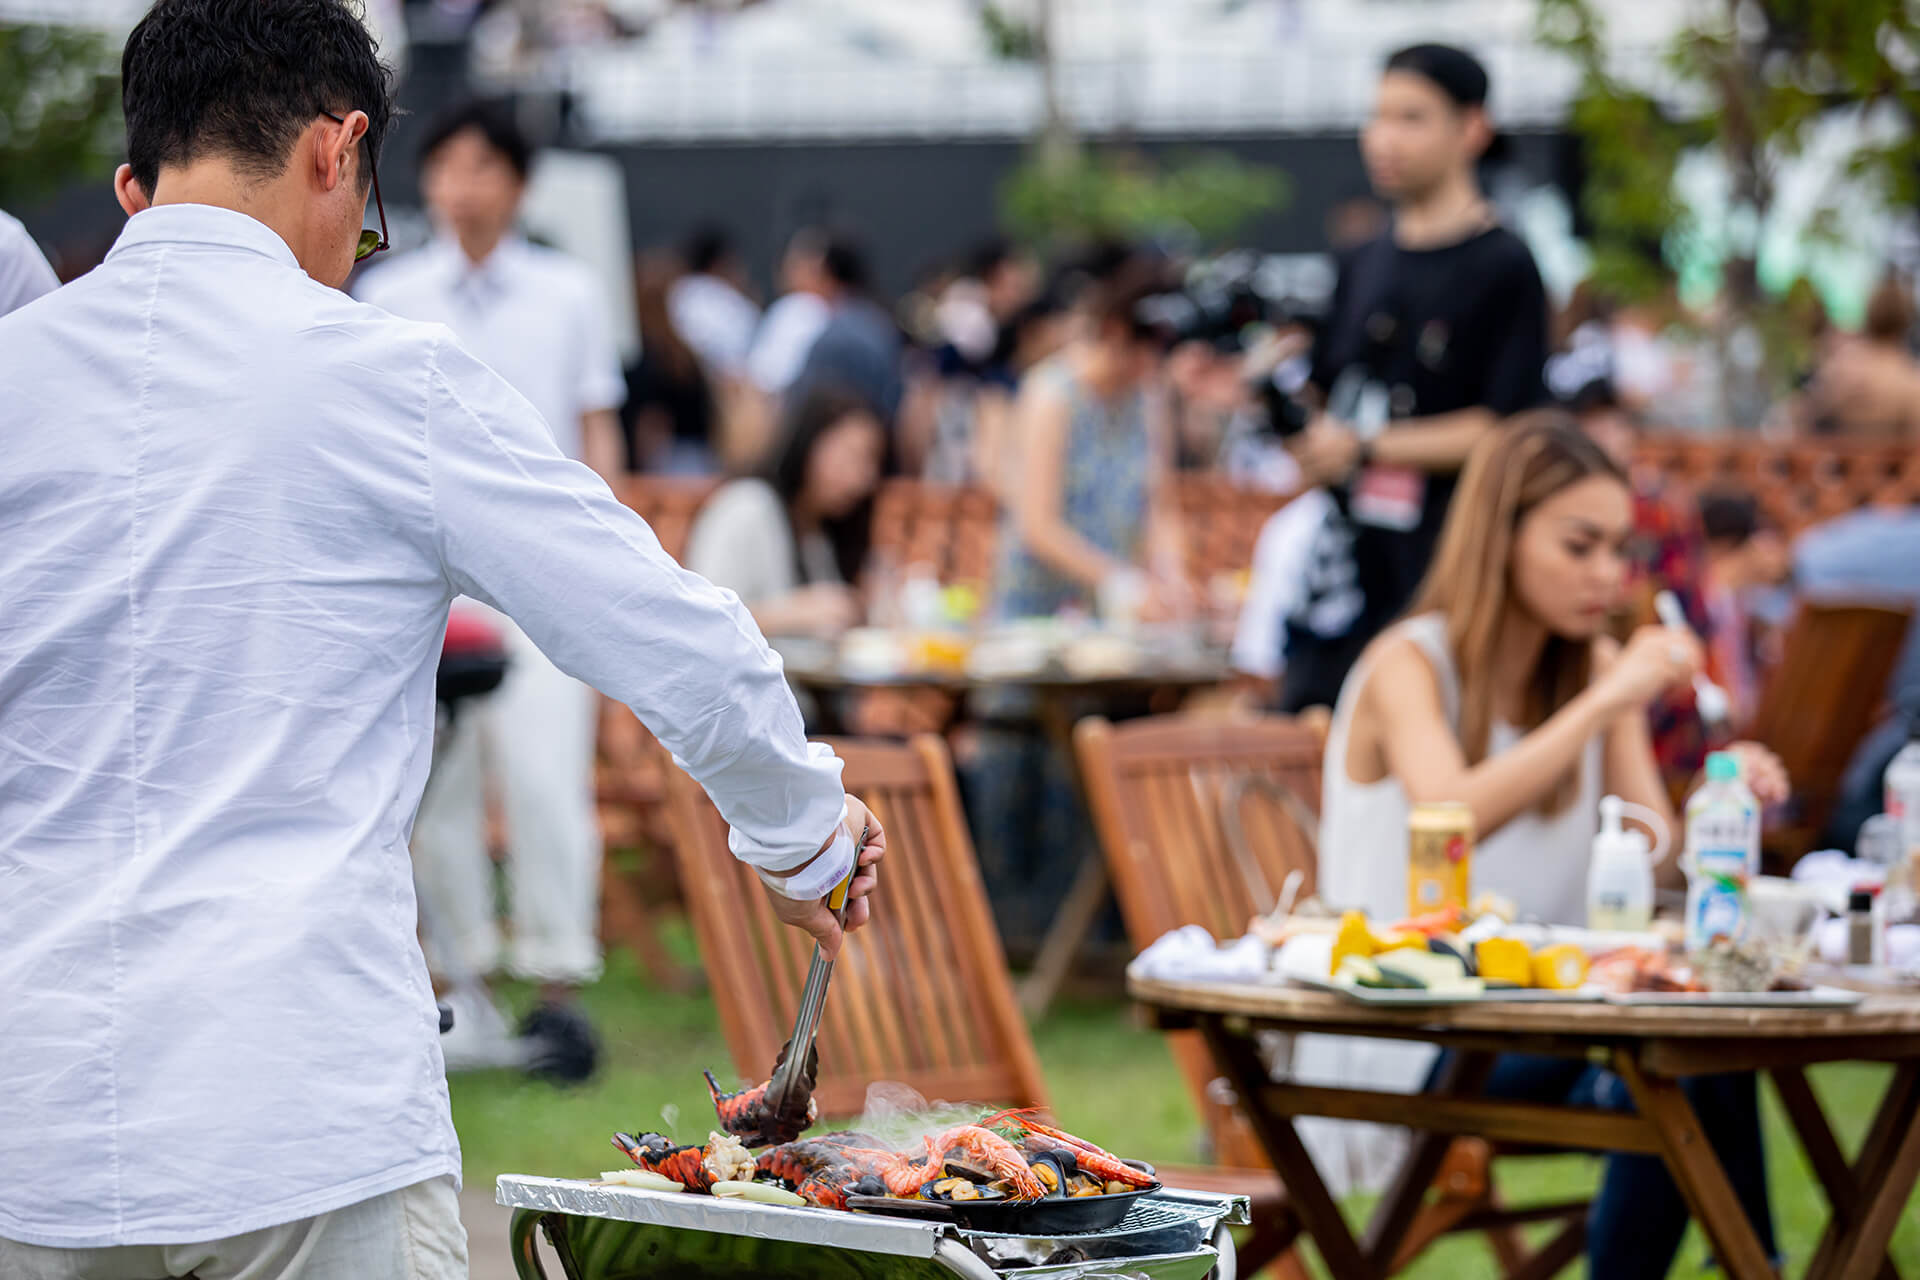 Families and groups can enjoy BBQ before the splendid show